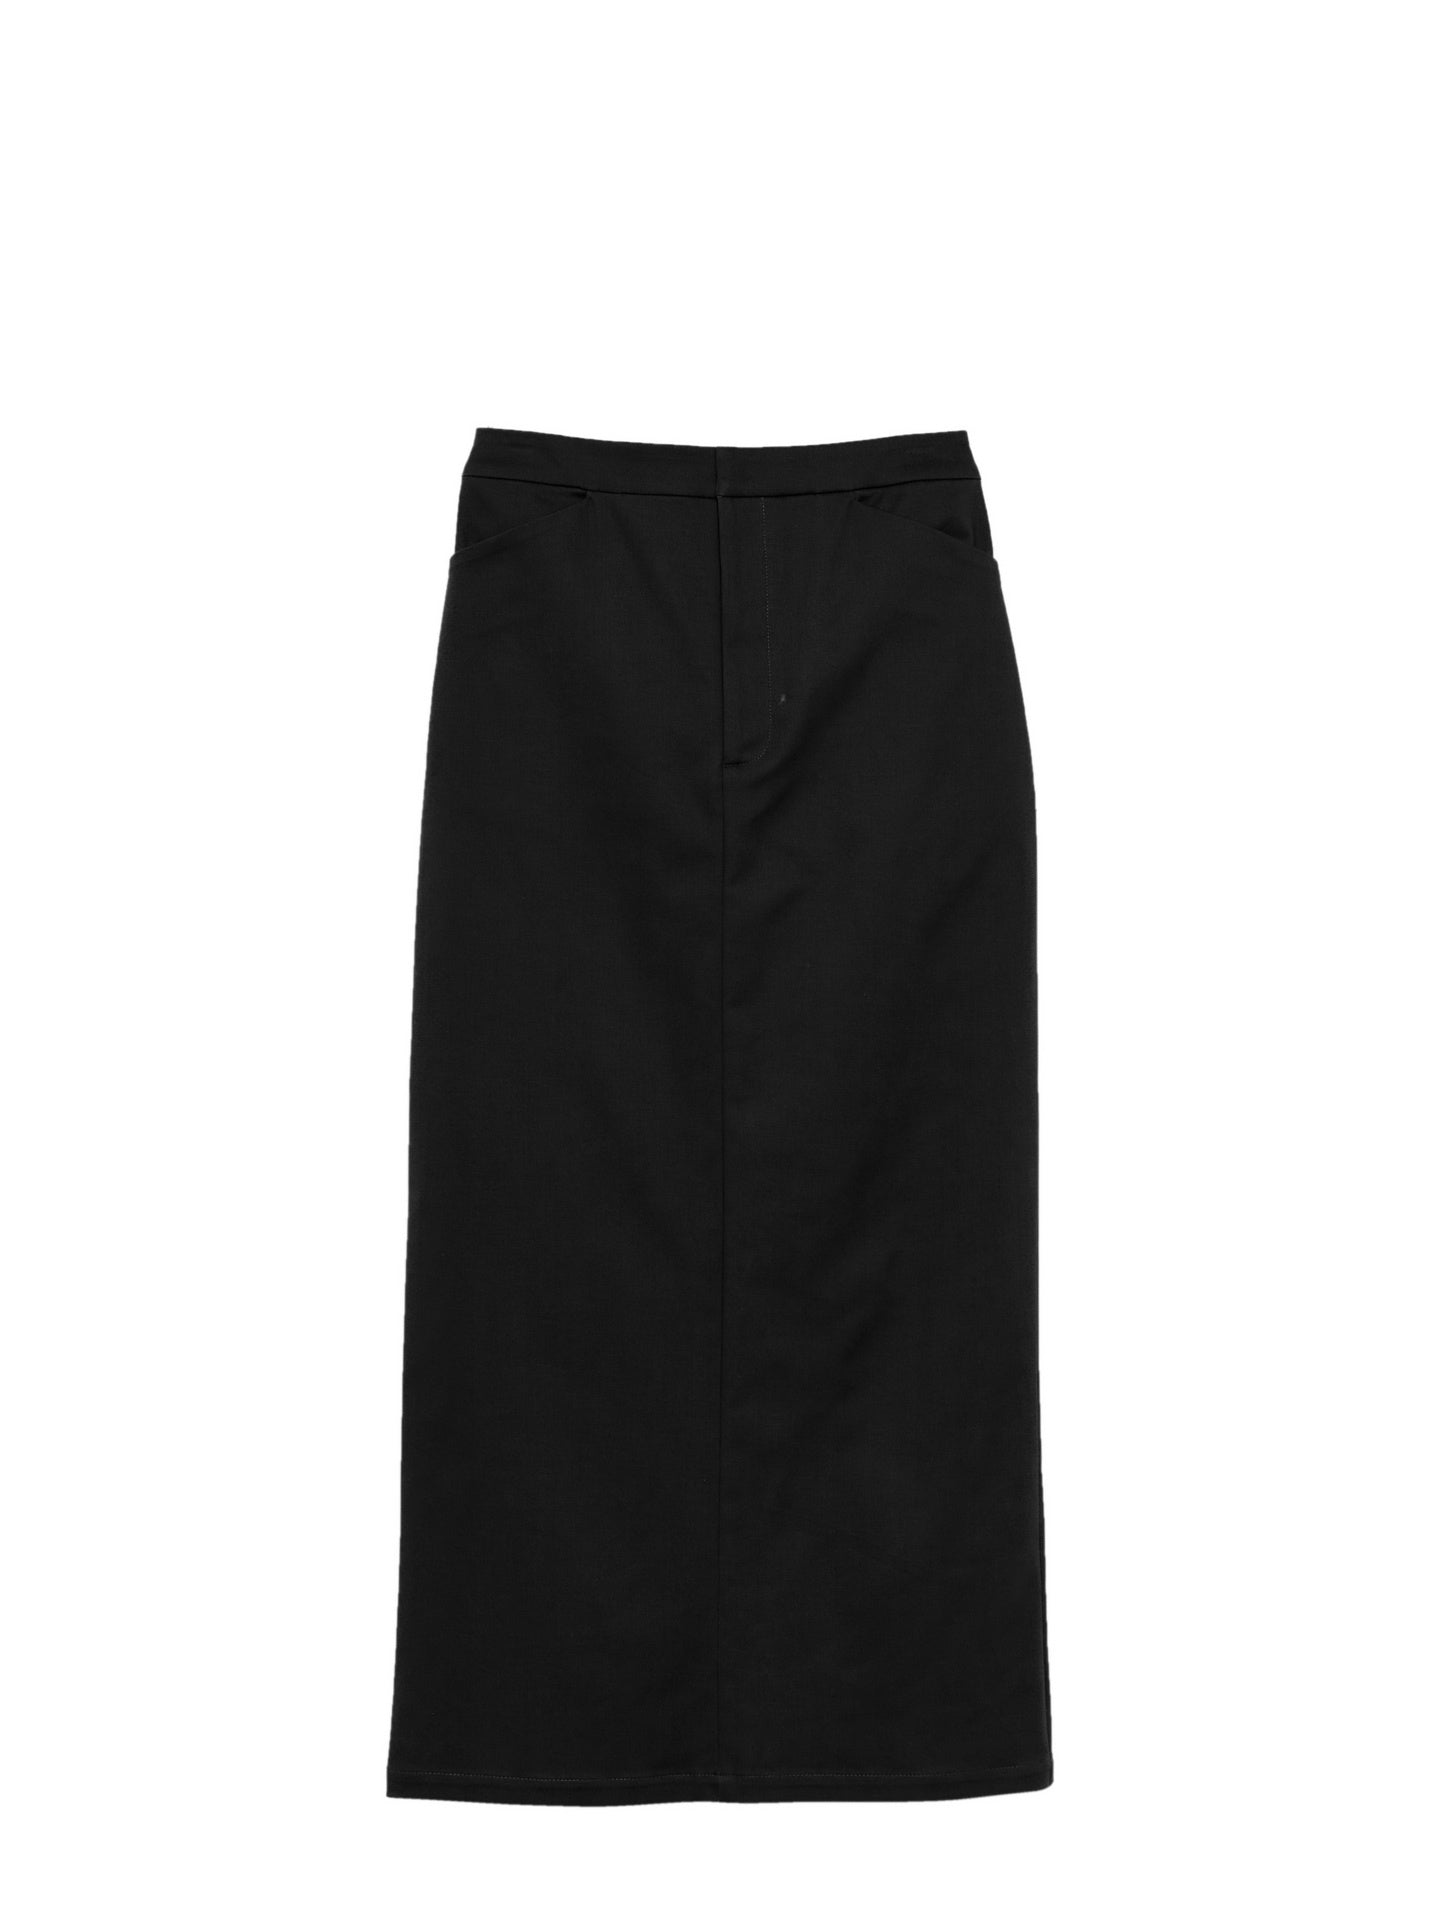 Sarah Skirt / Black Twill